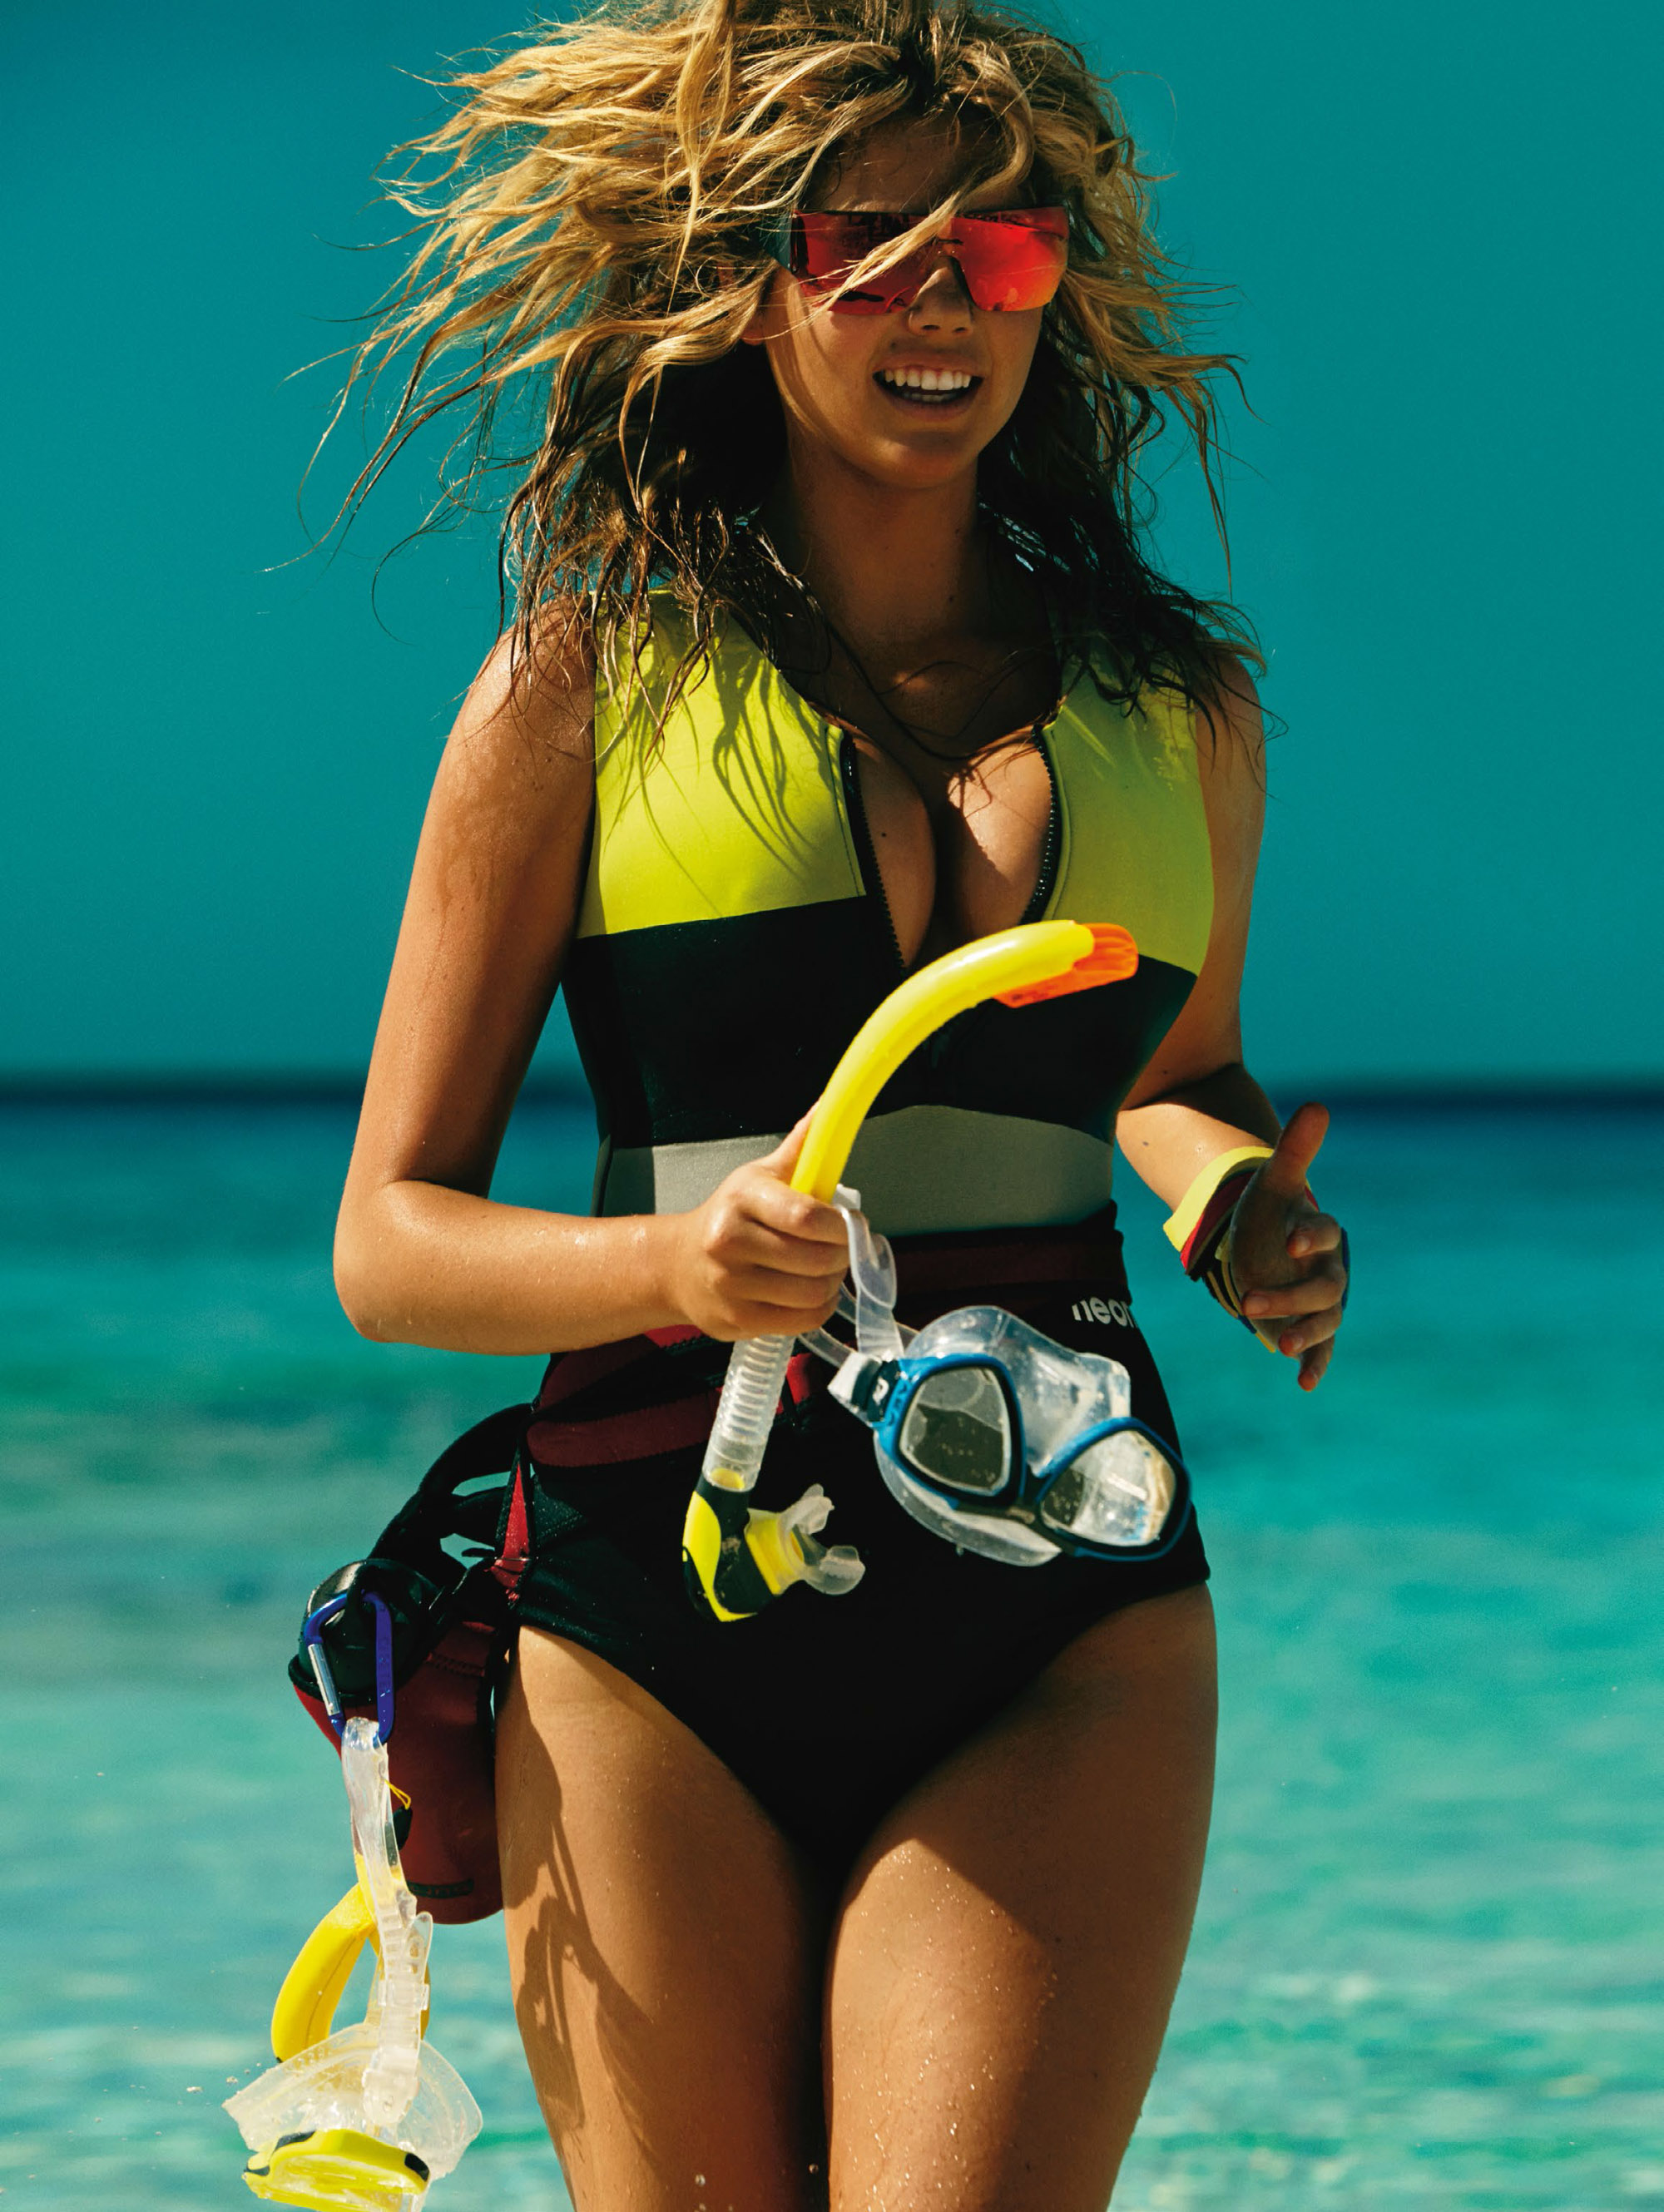 kate-upton-by-mario-testino-for-uk-vogue-june-2014